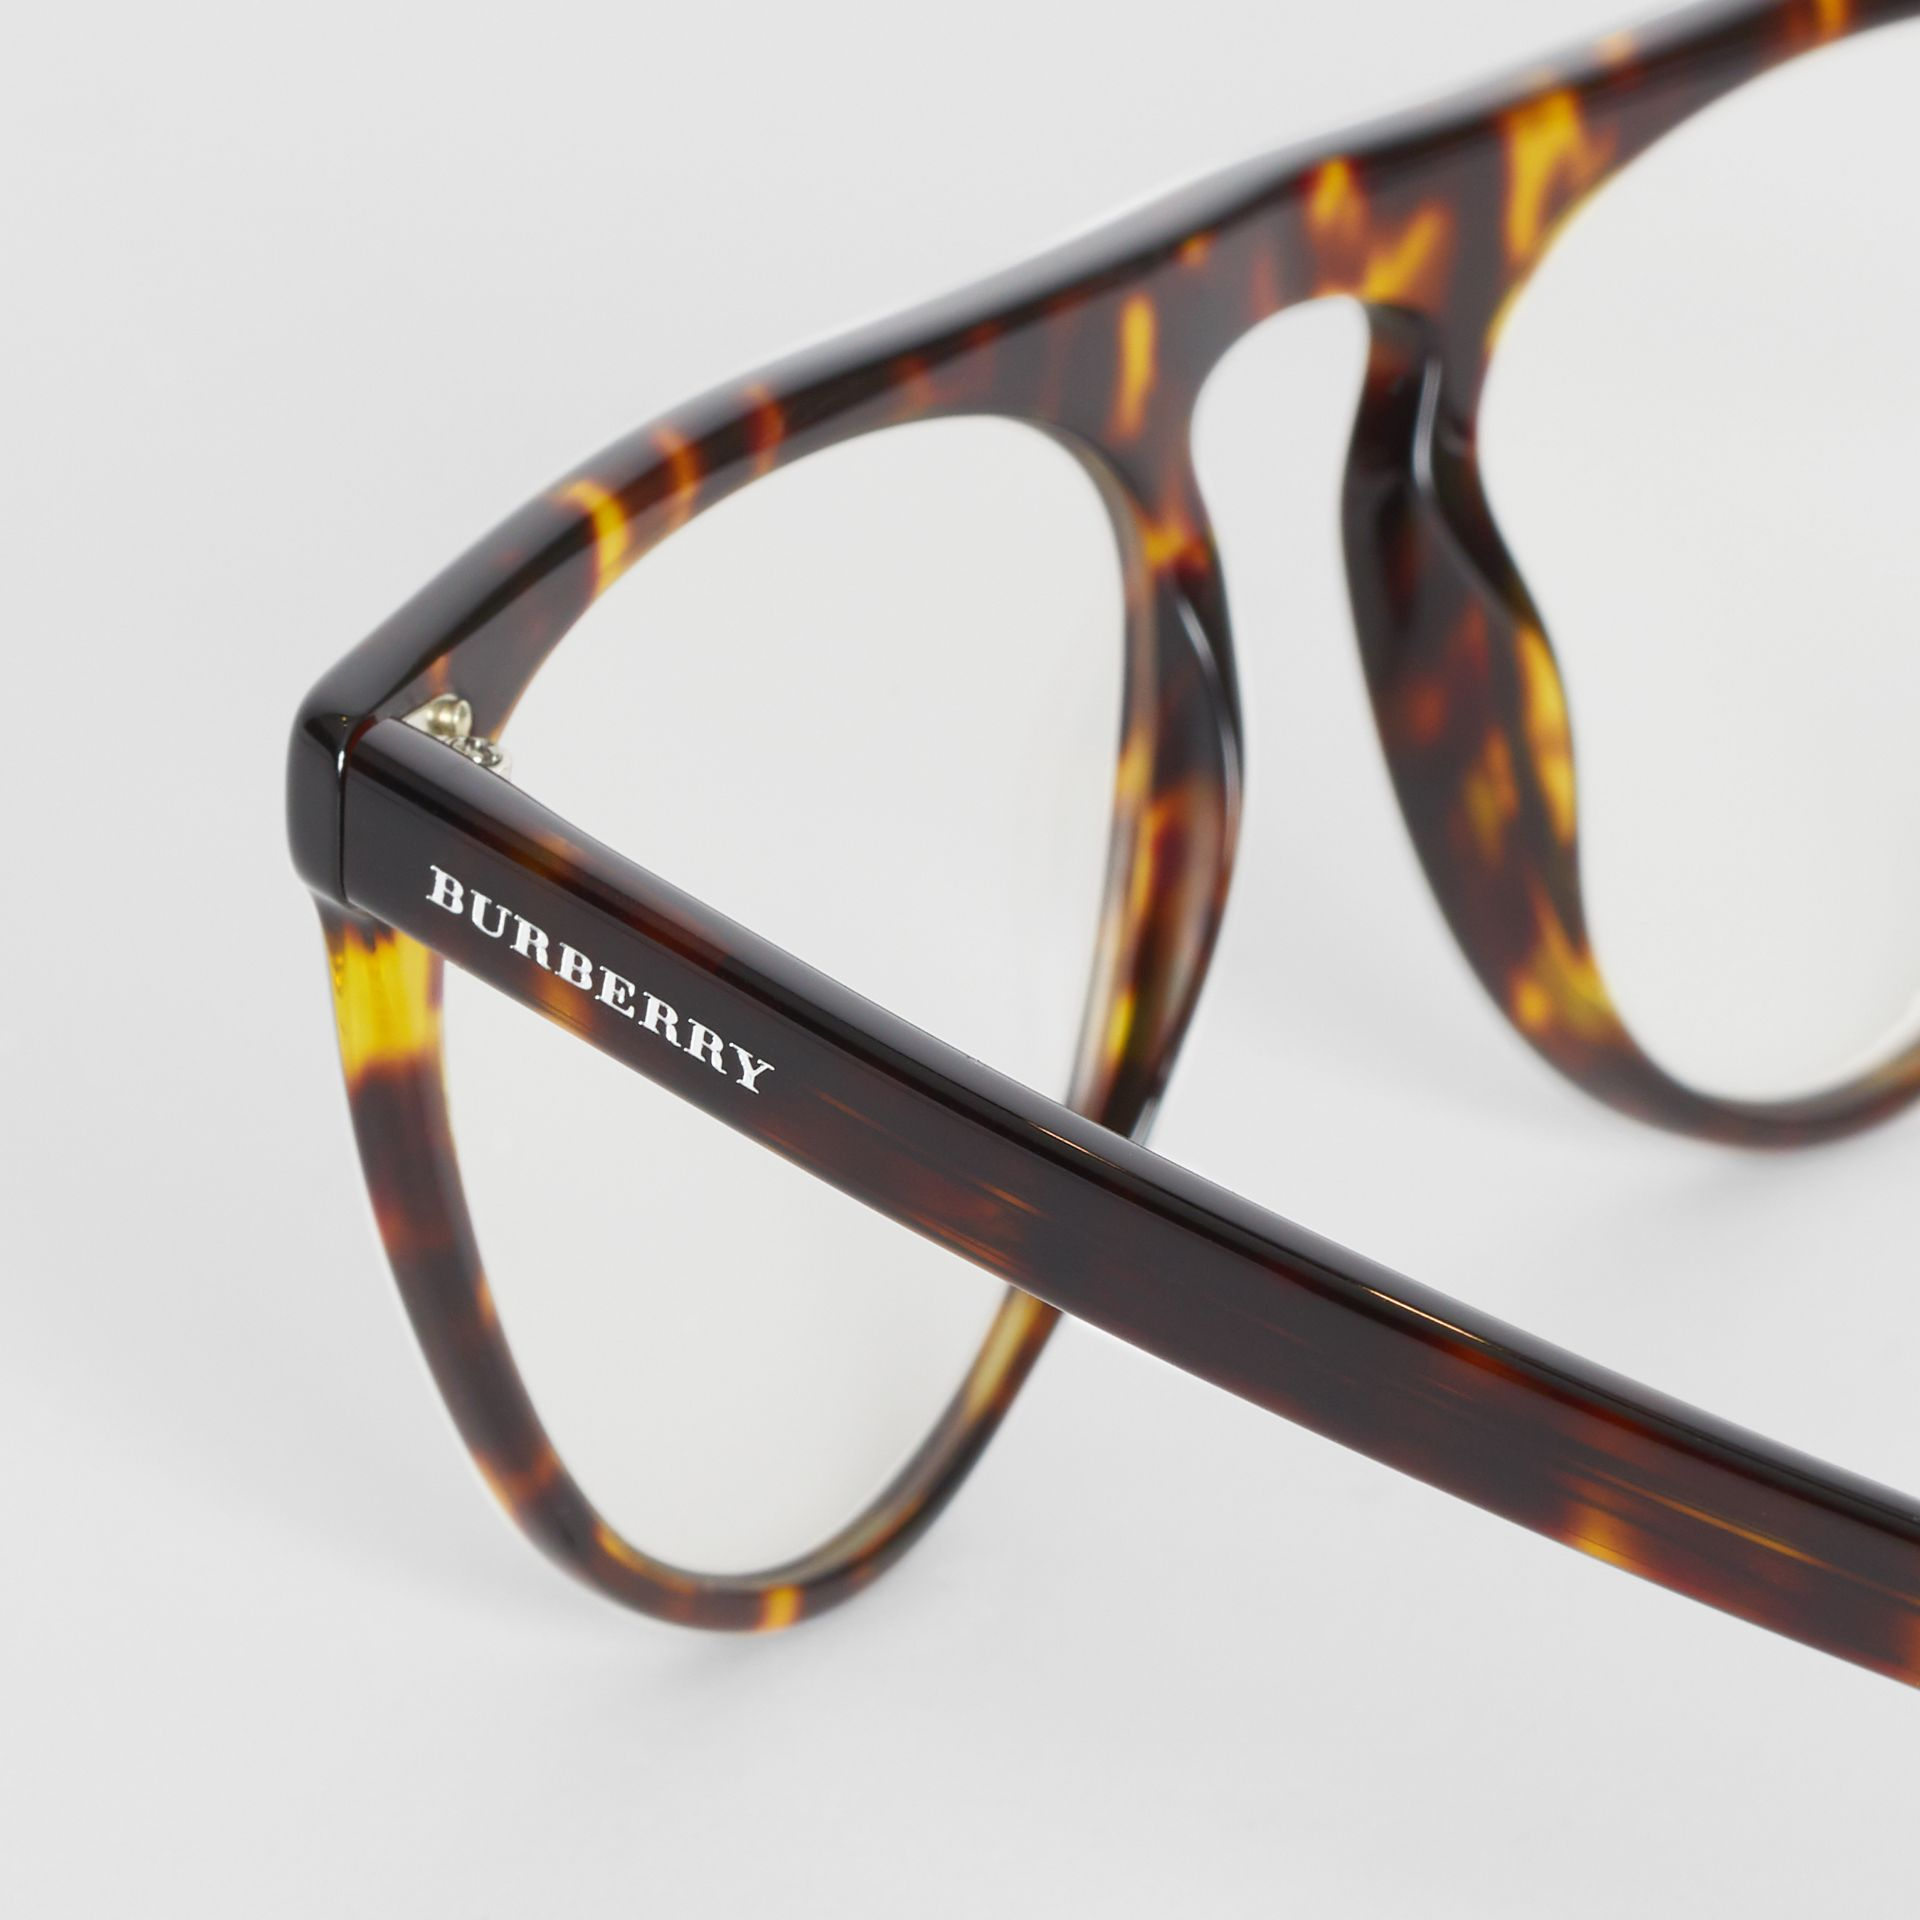 Keyhole D-shaped Optical Frames in Tortoise Shell - Men | Burberry - gallery image 1